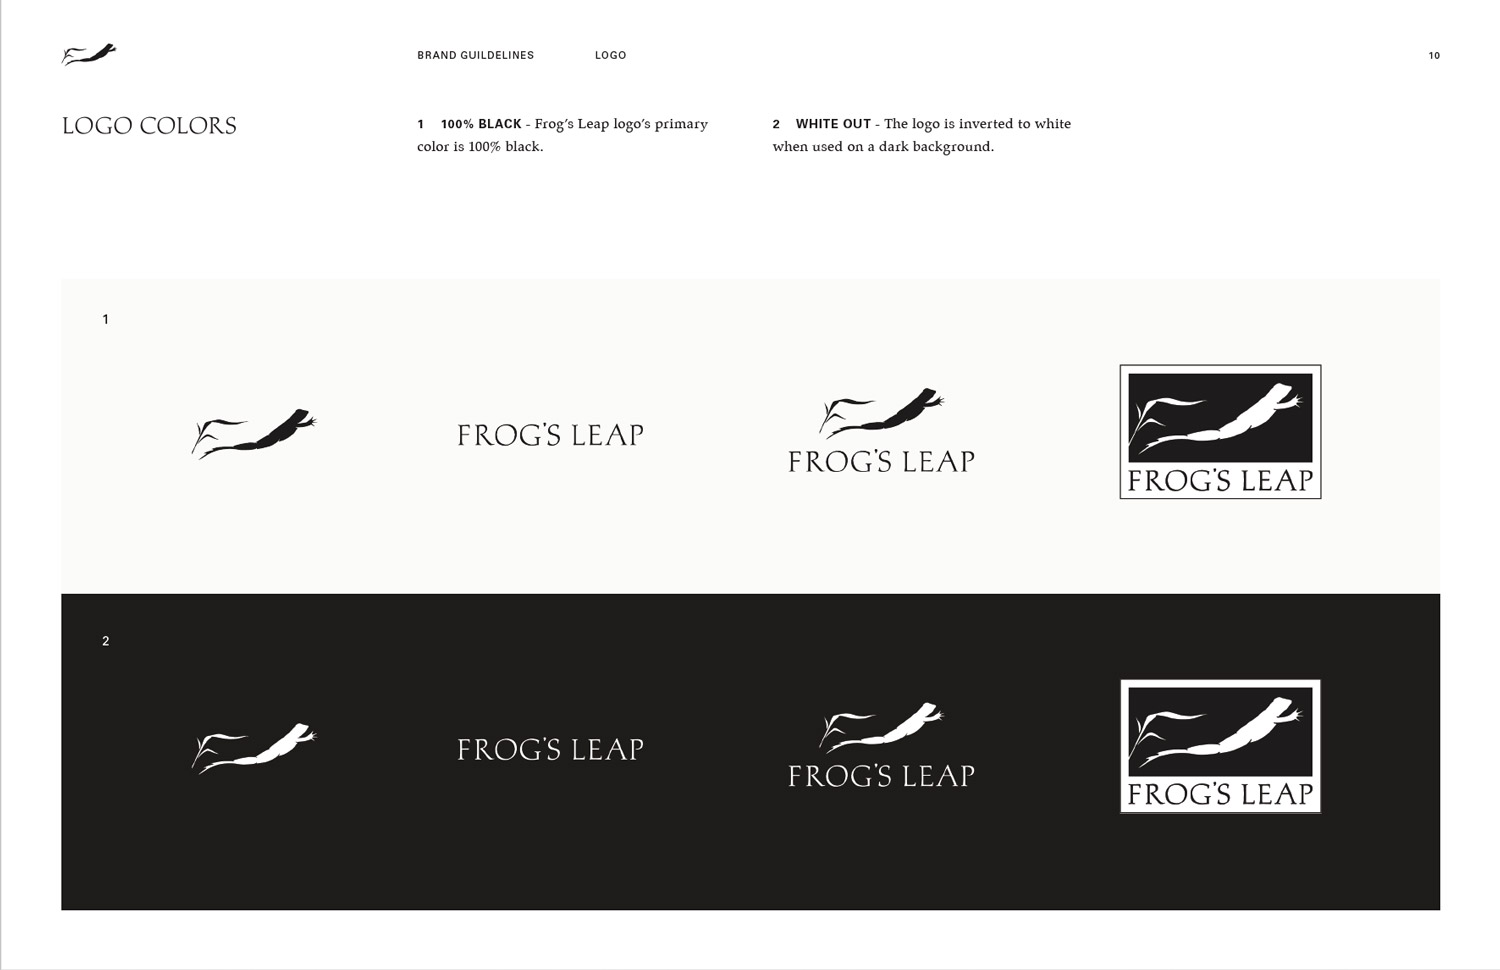 Frog's Leap Visual Identity Guidelines Logo Colors